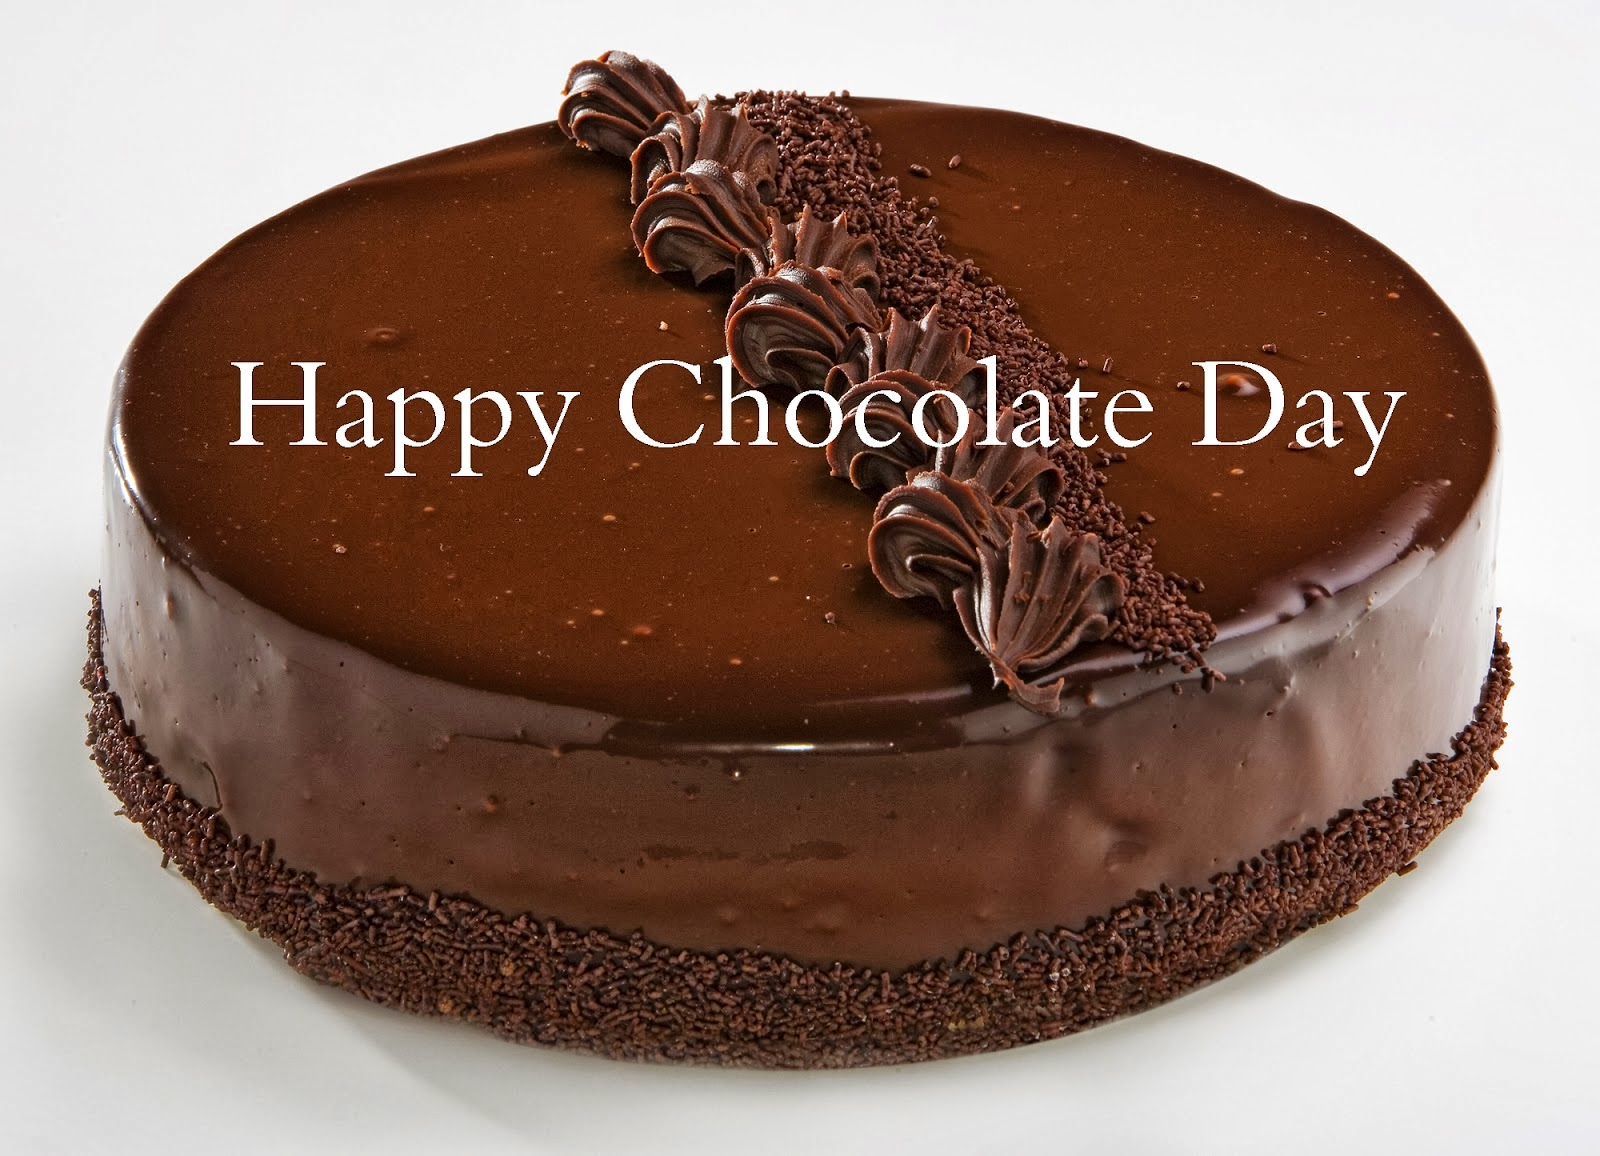 Chocolate Cake Images In Hd : Chocolate Cake HD Wallpapers Free Download ~ Unique Wallpapers